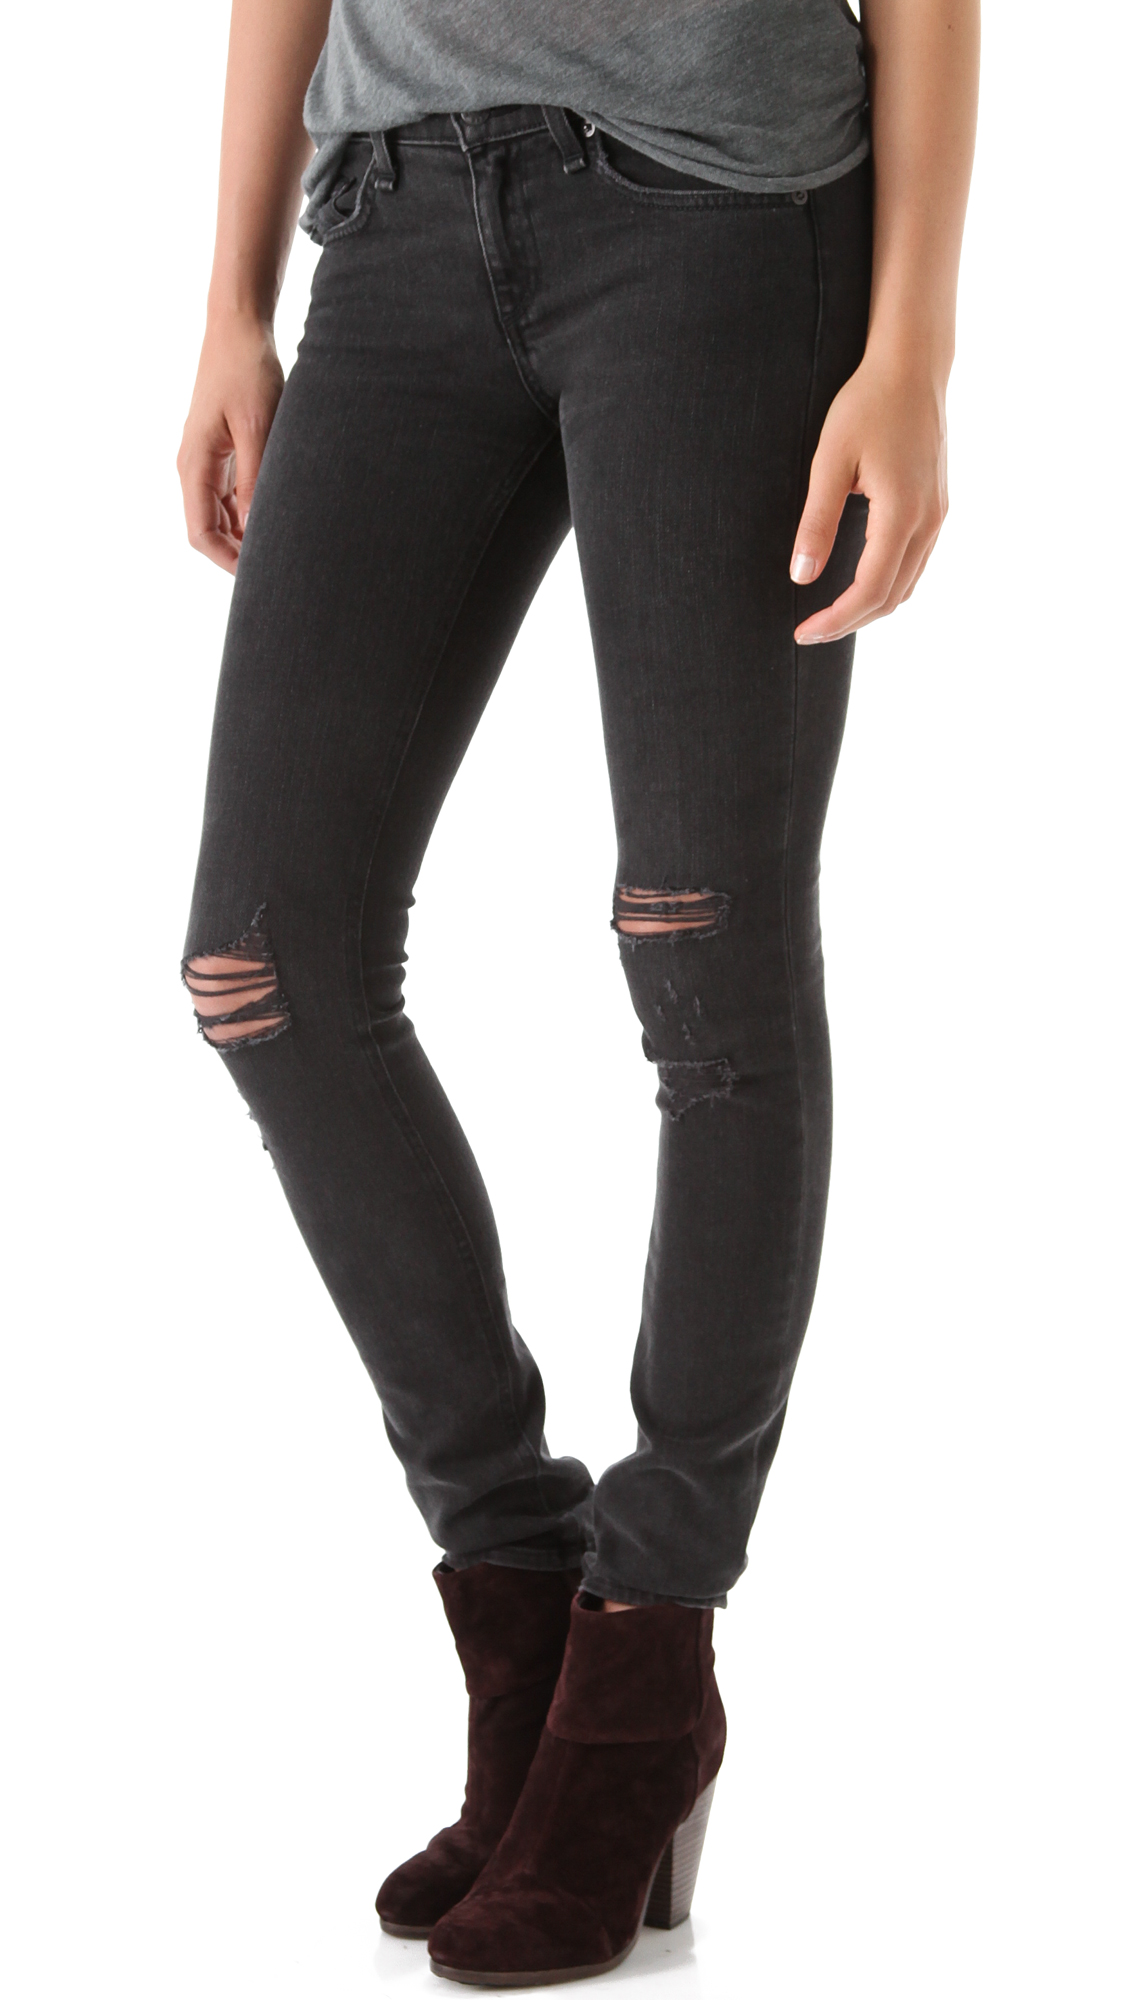 & Bone/JEAN The Skinny Jeans | SHOPBOP